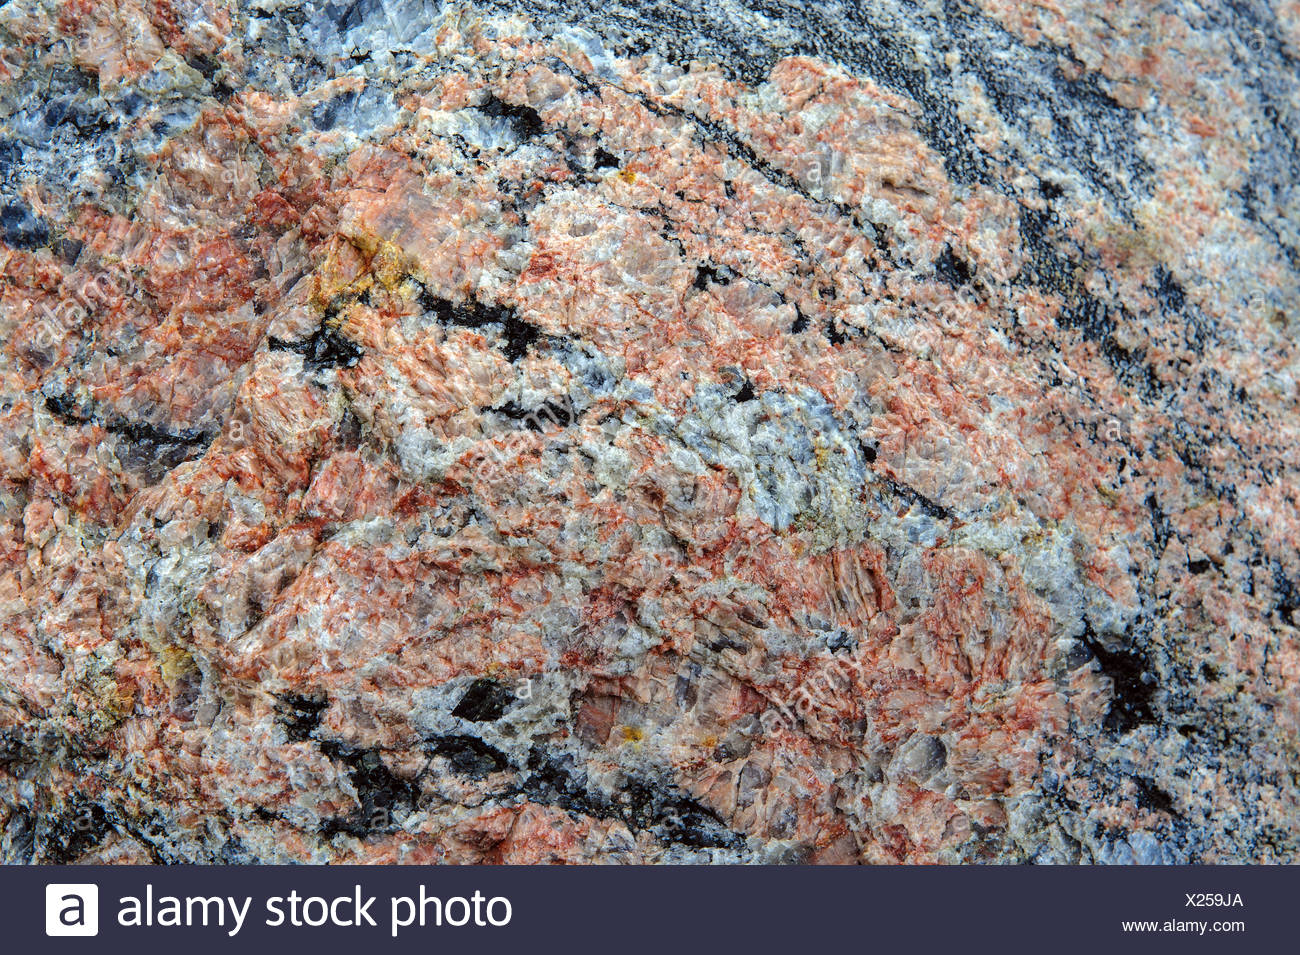 unprocessed granite block - Stock Image